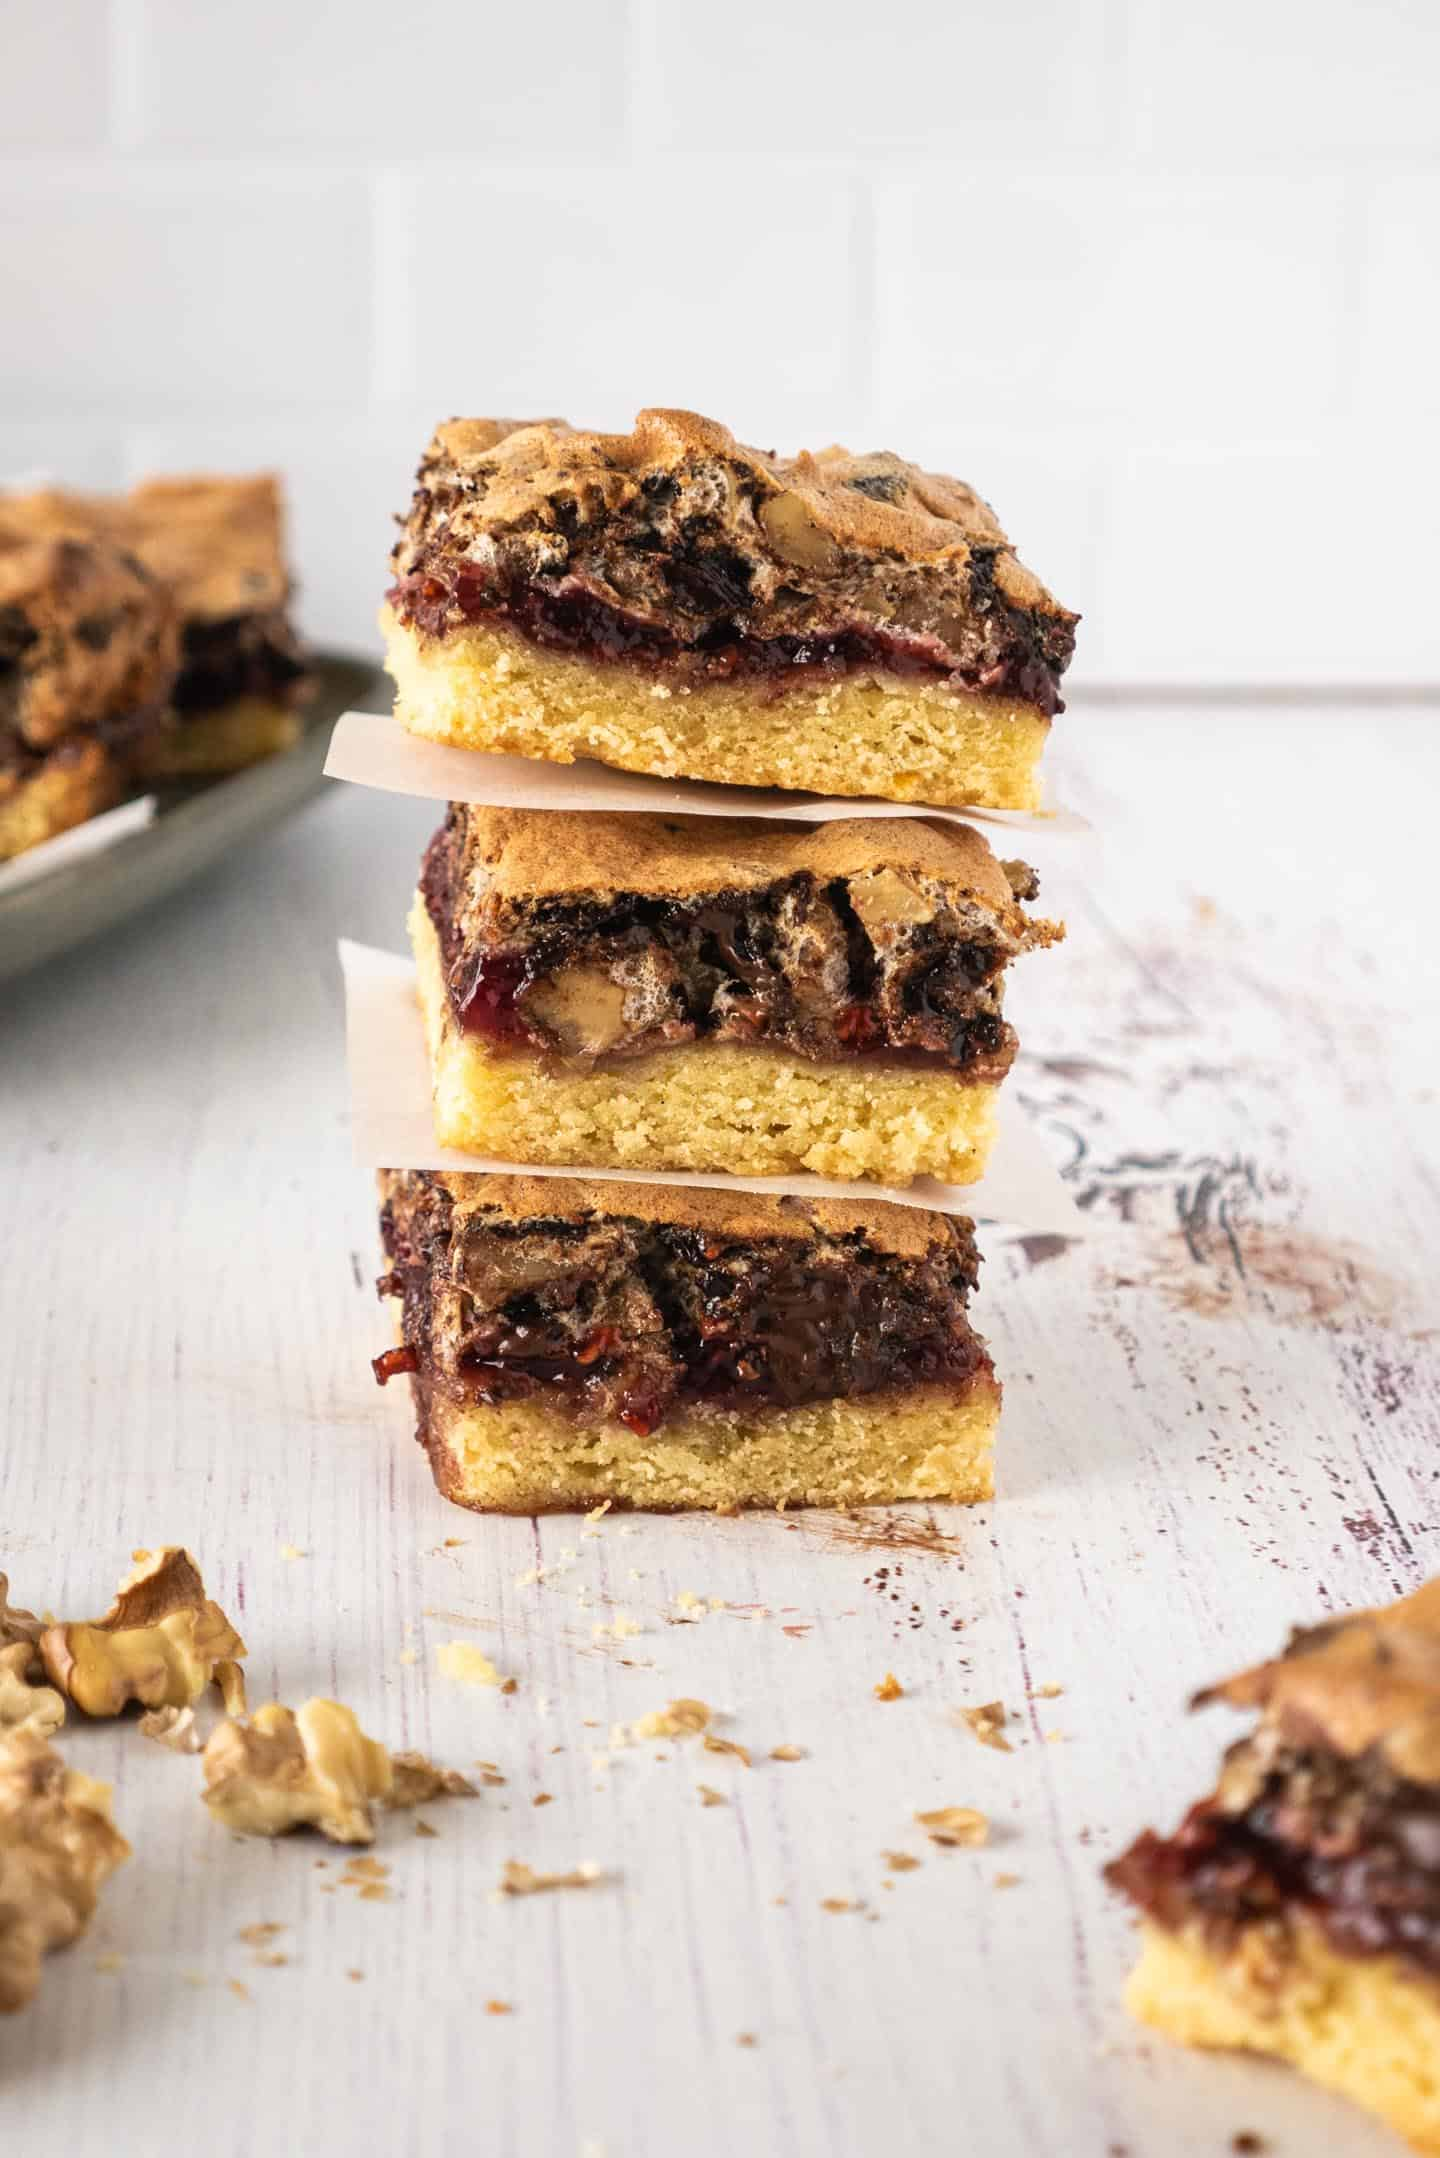 Three square raspberry bars with chocolate and walnuts meringue, and a plate with more tart at the back